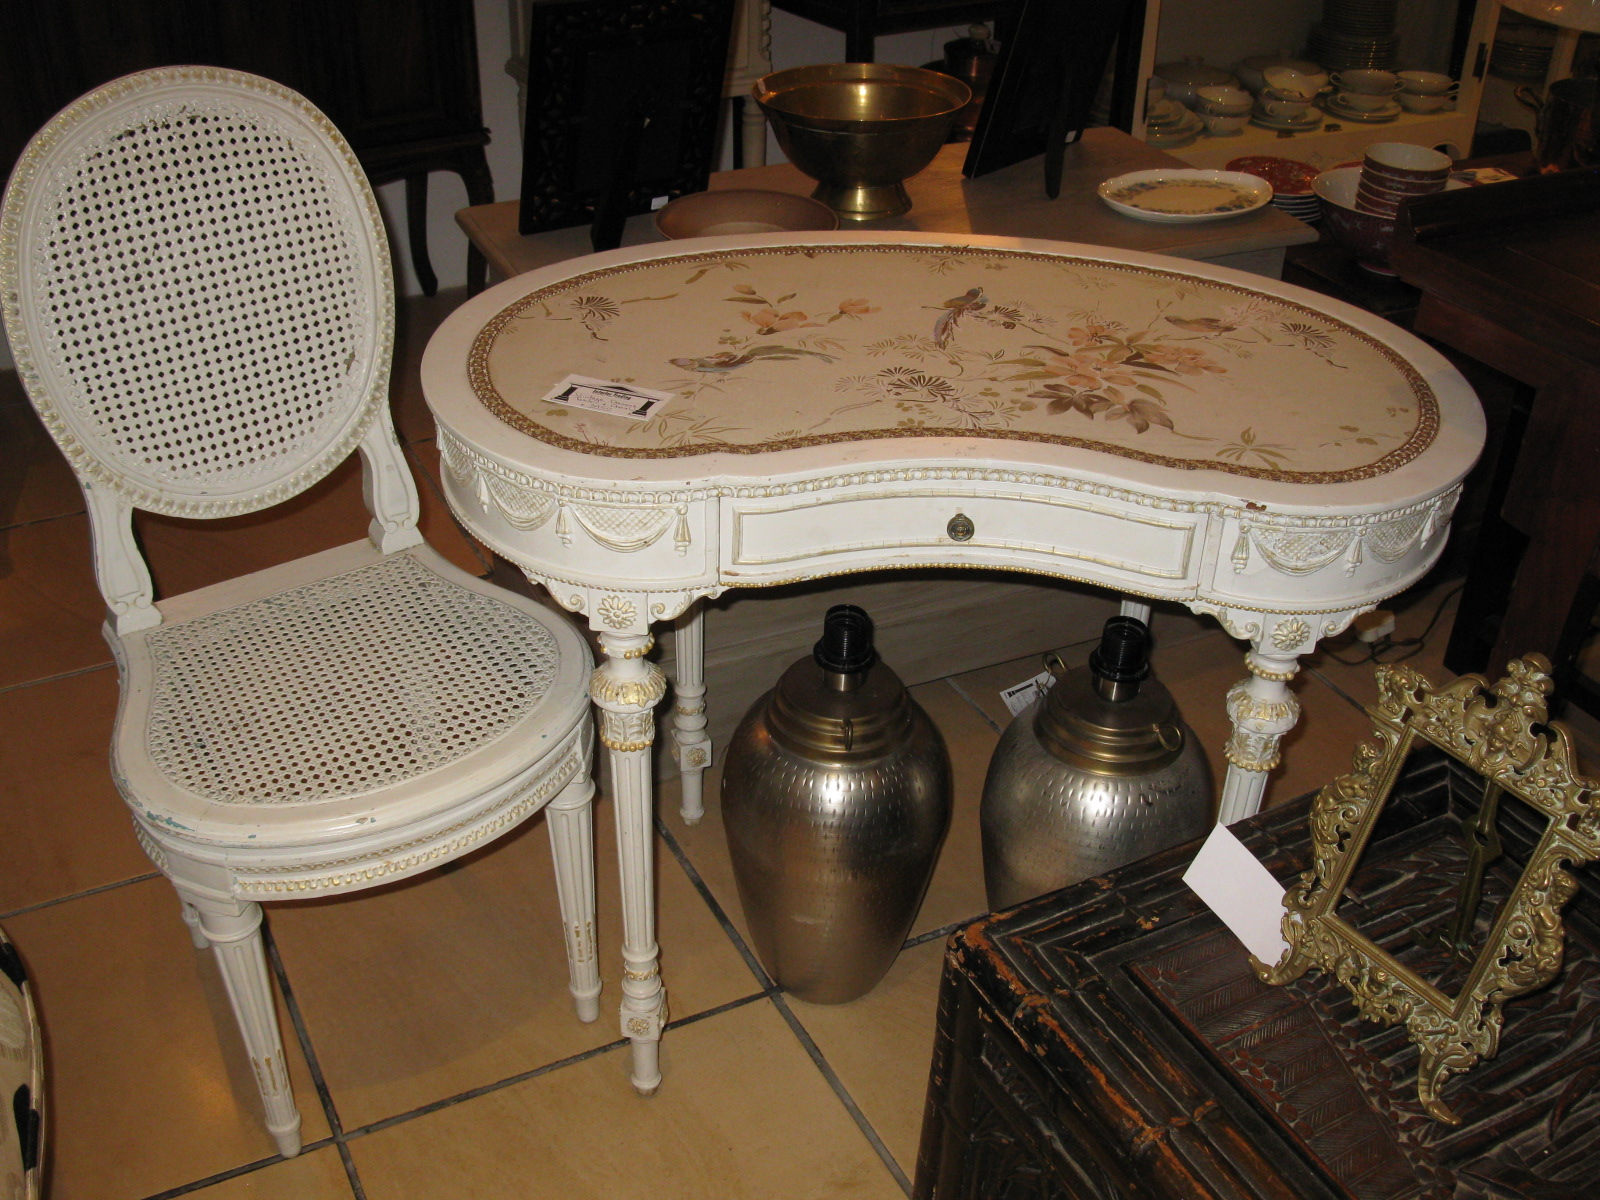 vintagedressingtablechair